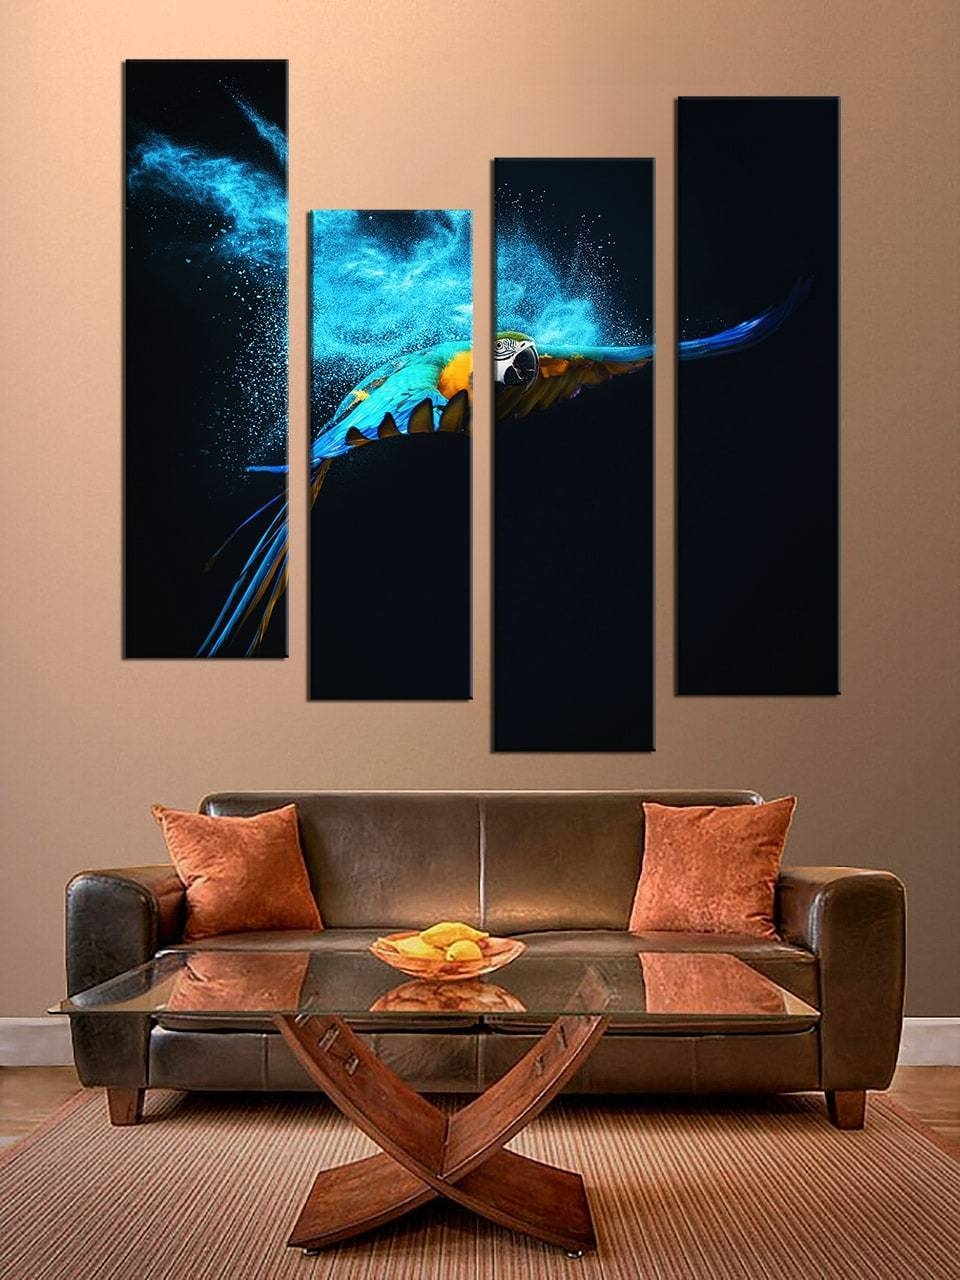 Cozy 4 Piece Wall Art Home Daccor Piece Canvas 4 Piece Abstract Regarding 2017 4 Piece Wall Art Sets (View 14 of 20)